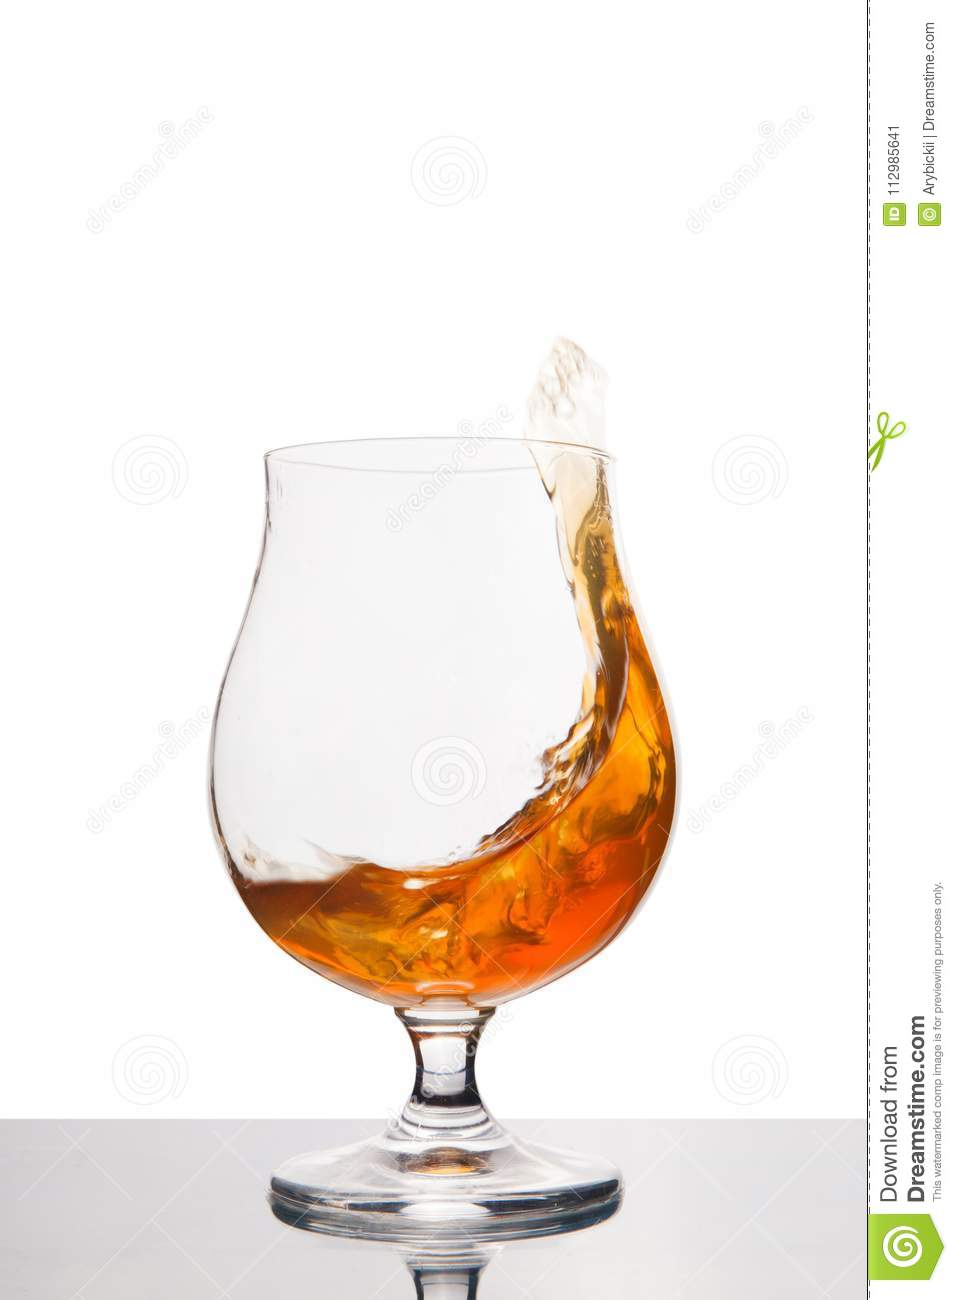 Cognac in wineglass isolated on white